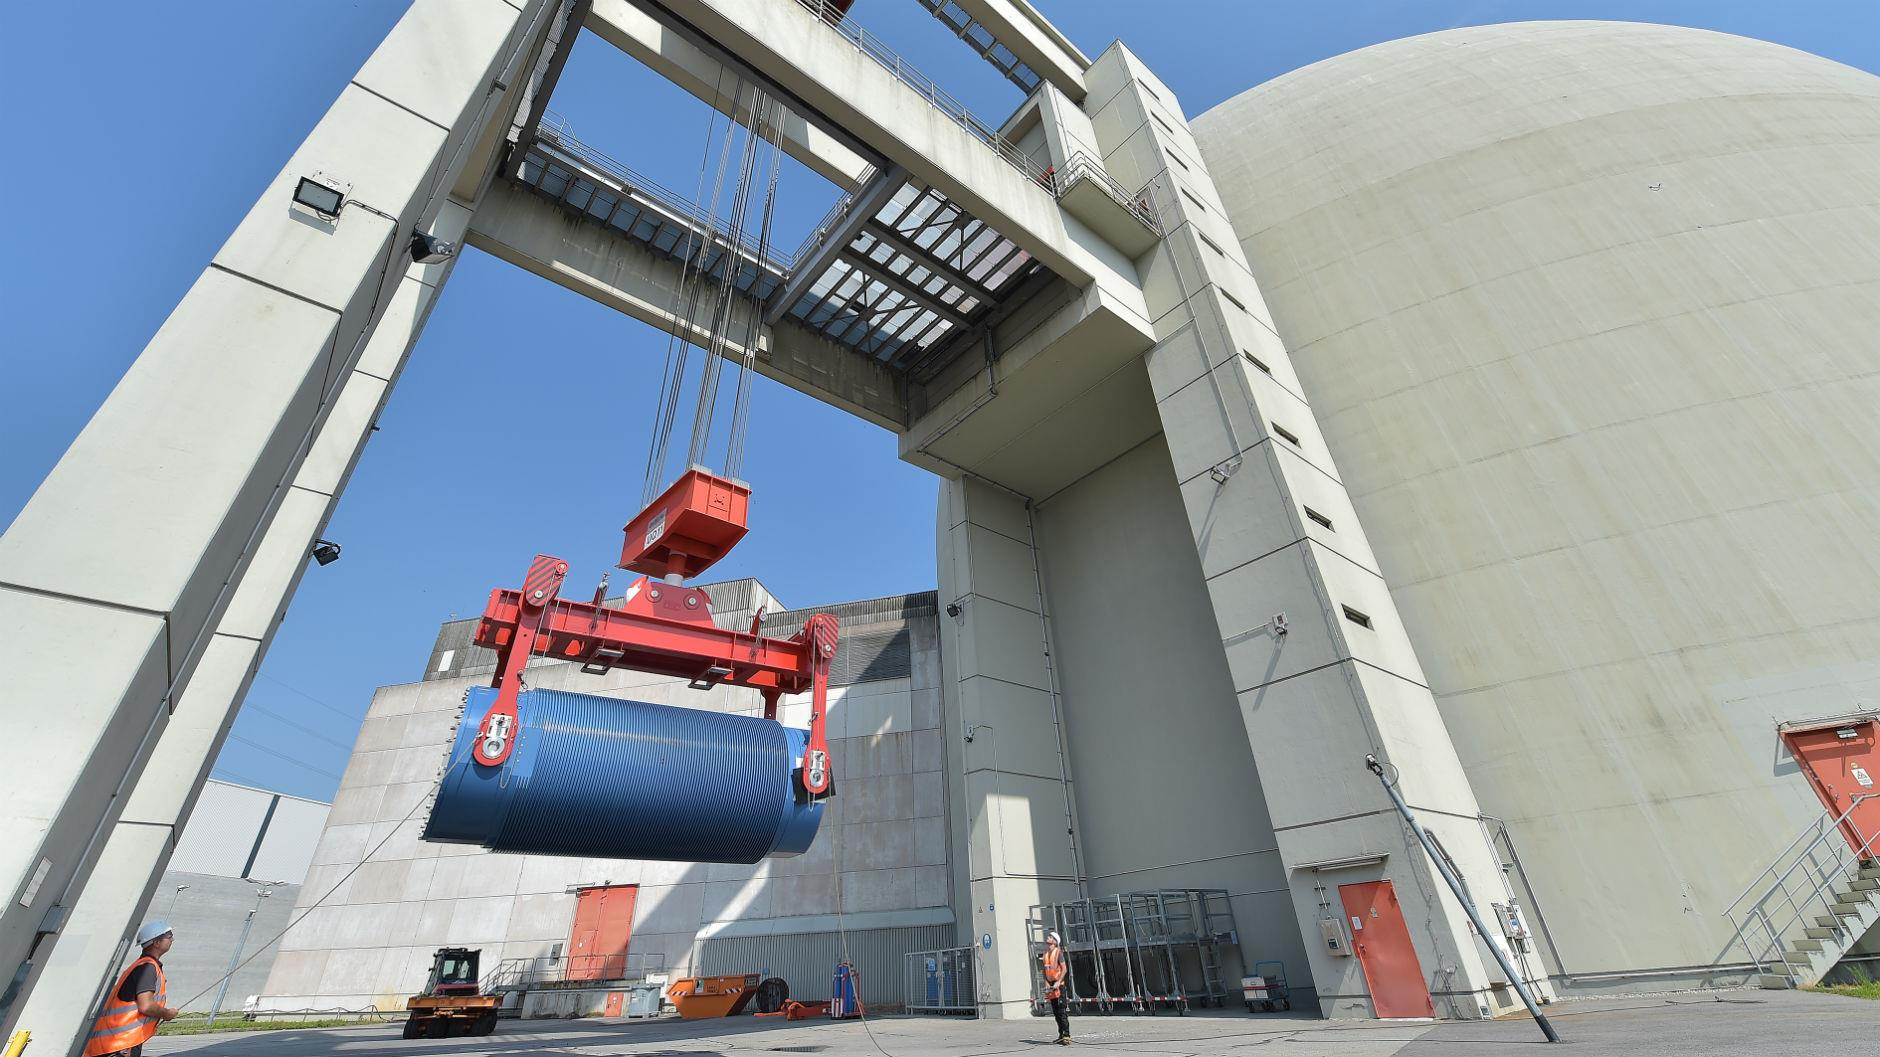 Decommissioning activities at RWE's nuclear power plant in Biblis, Germany.